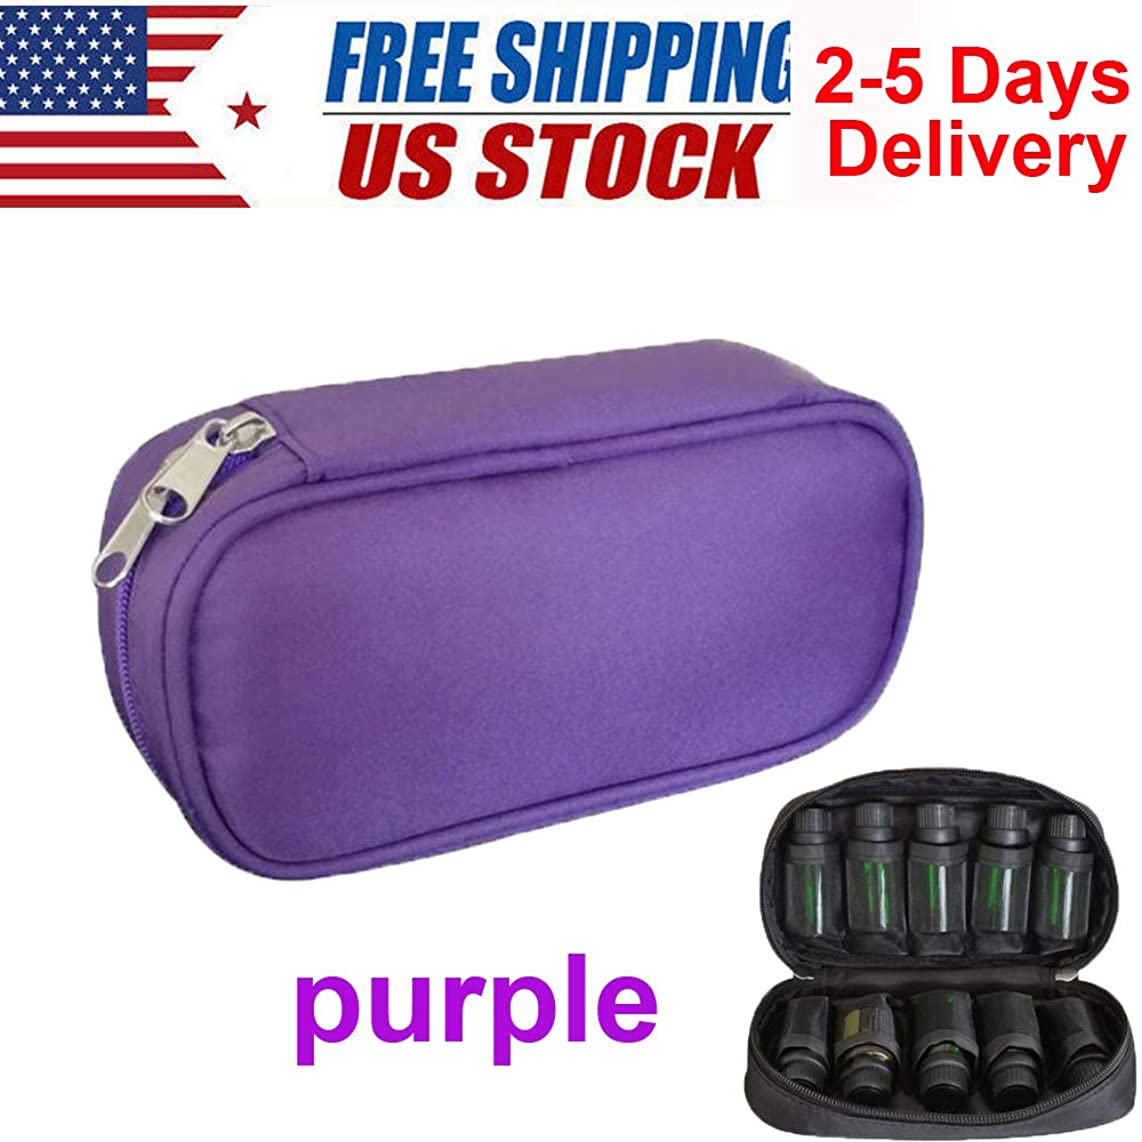 10 Grids Essential Oils Storage Bag for Traveling, Oil Carrying Case Cosmetic Storage Bags Container Make up Bag from USA Stock